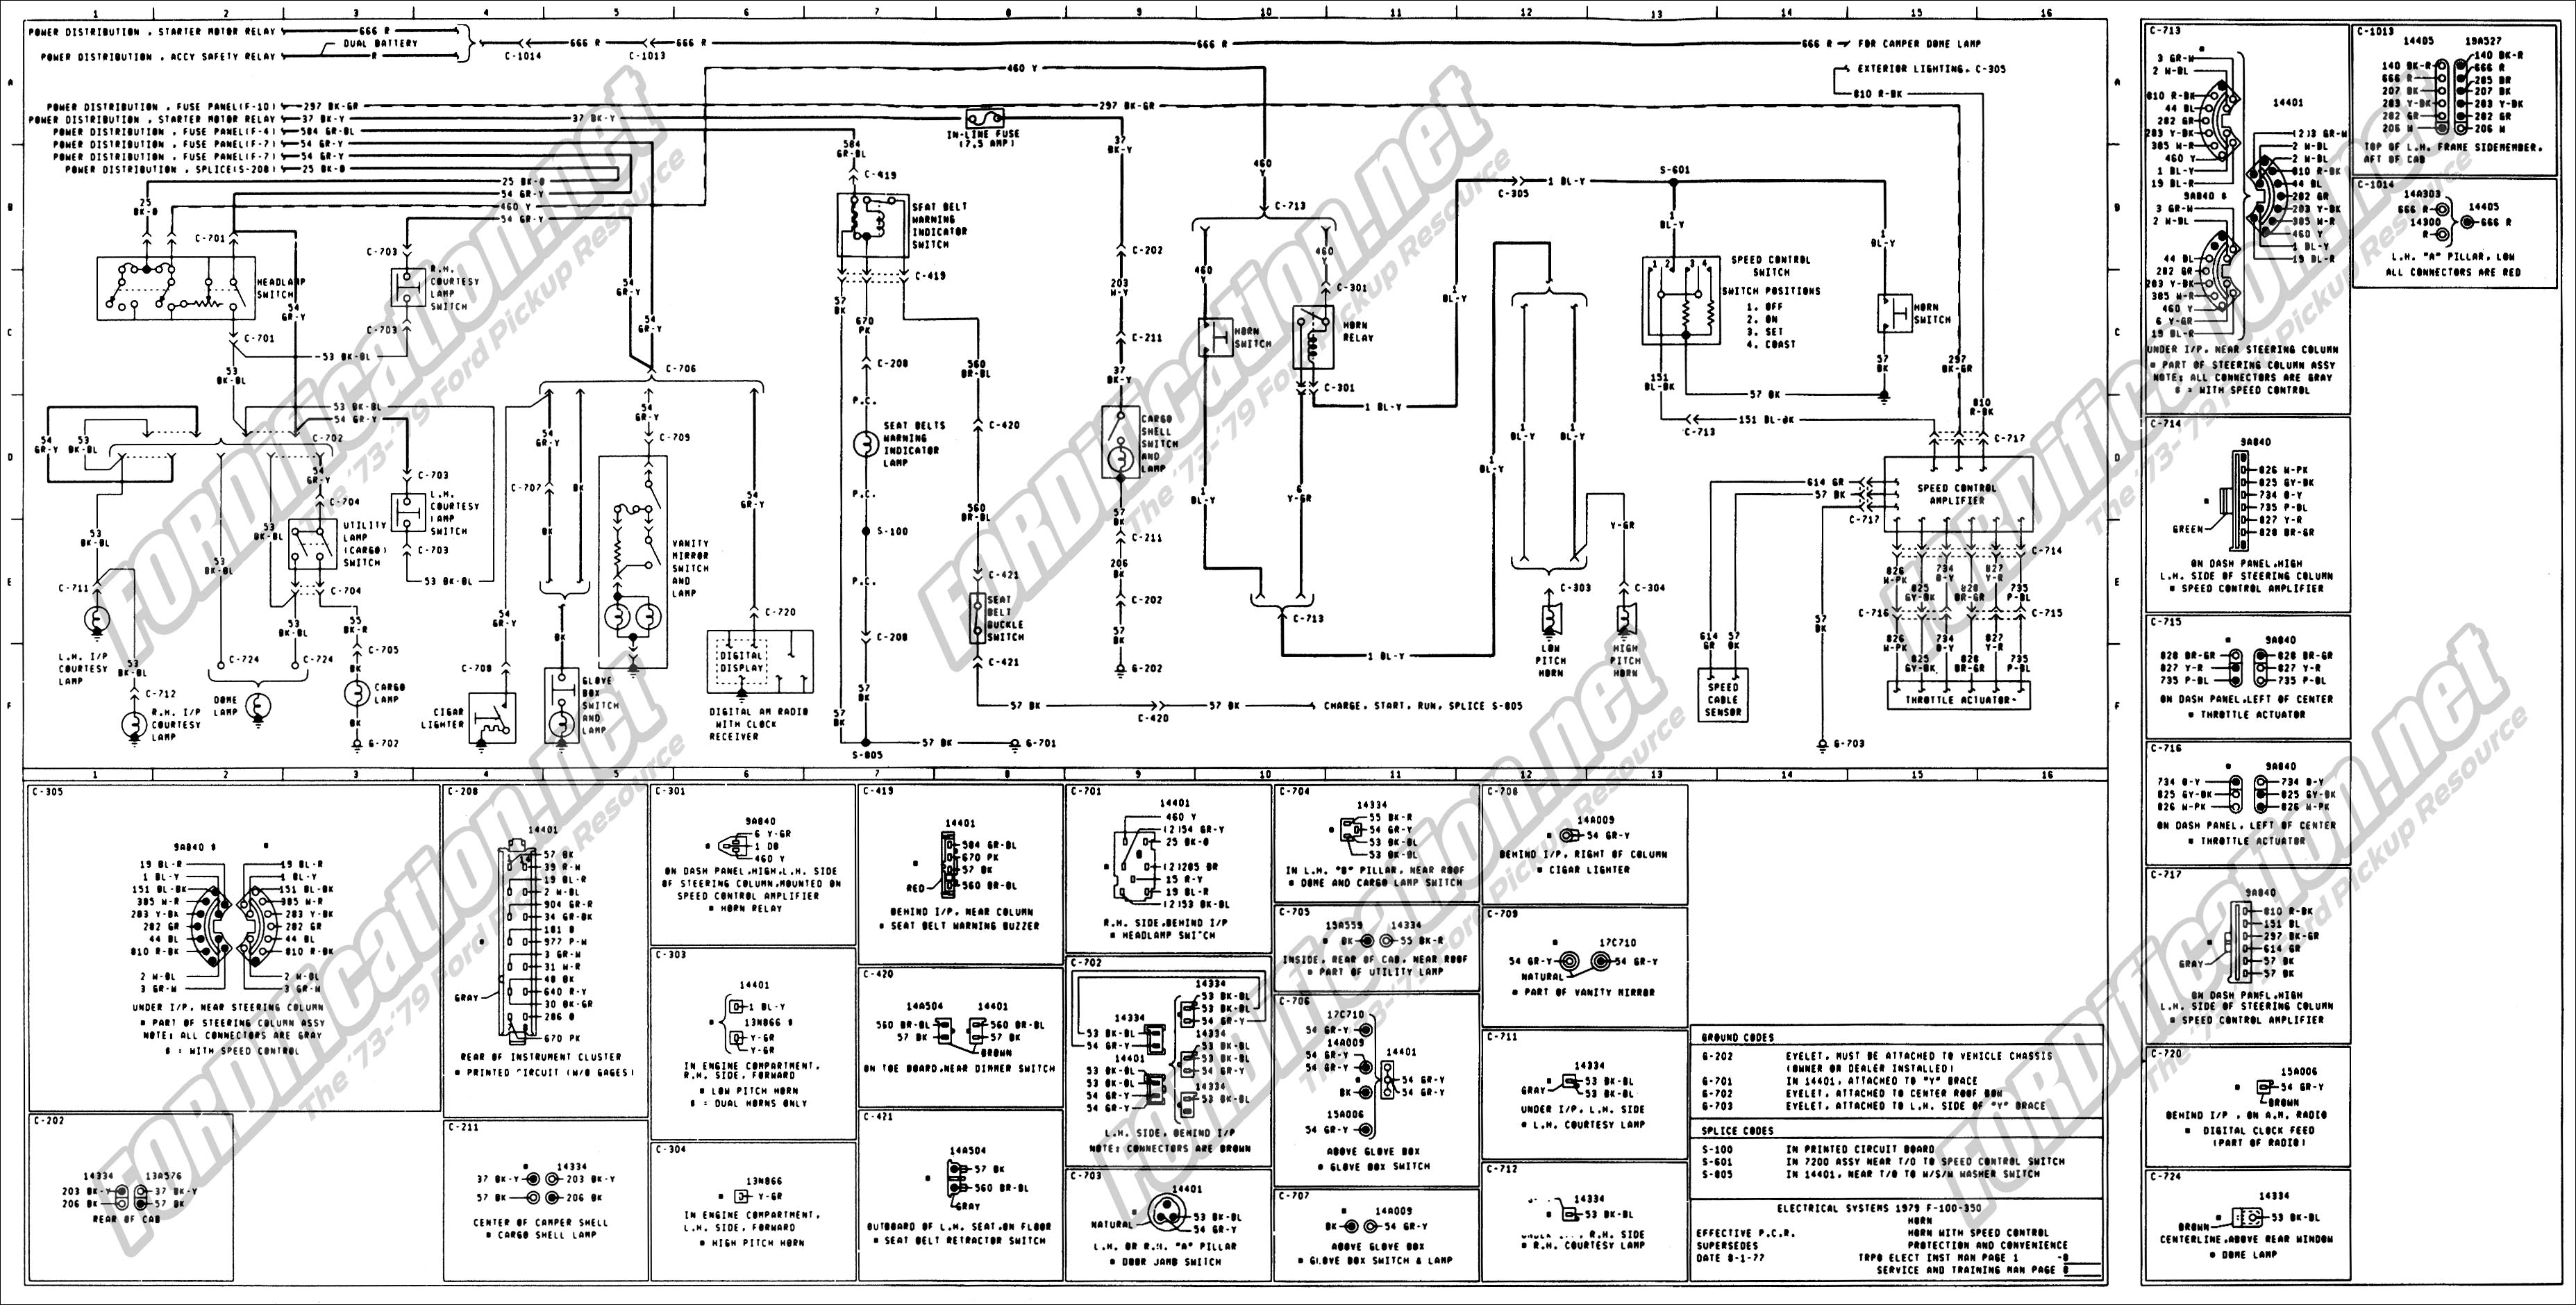 Ford Truck Wiring Diagram Cruisecontrol | Wiring Diagram on